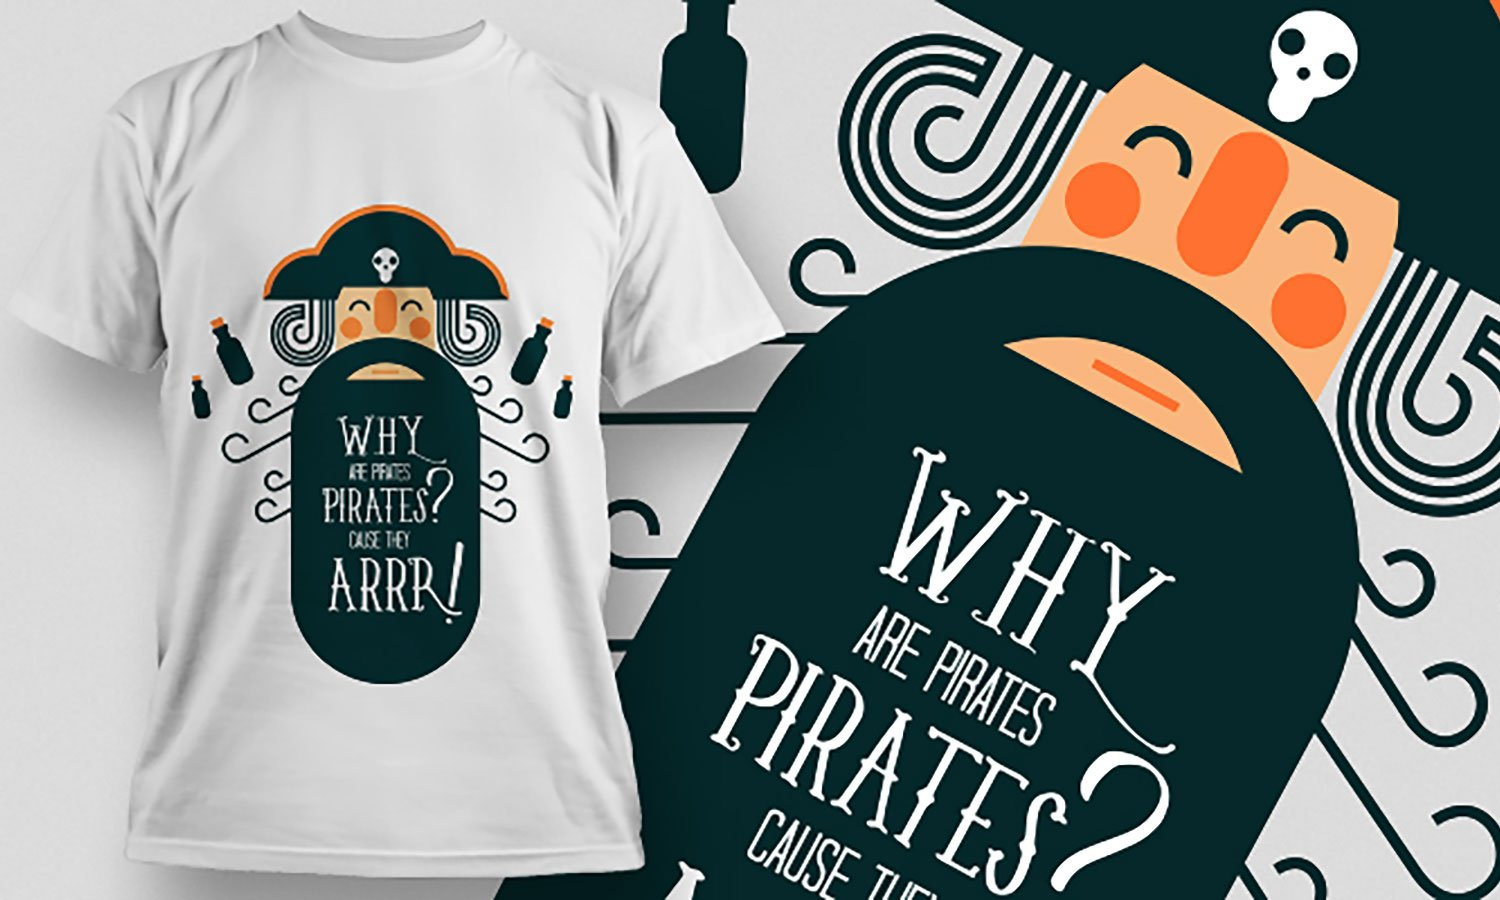 Pirates - Printed T-Shirt for Men, Women and Kids - TS438